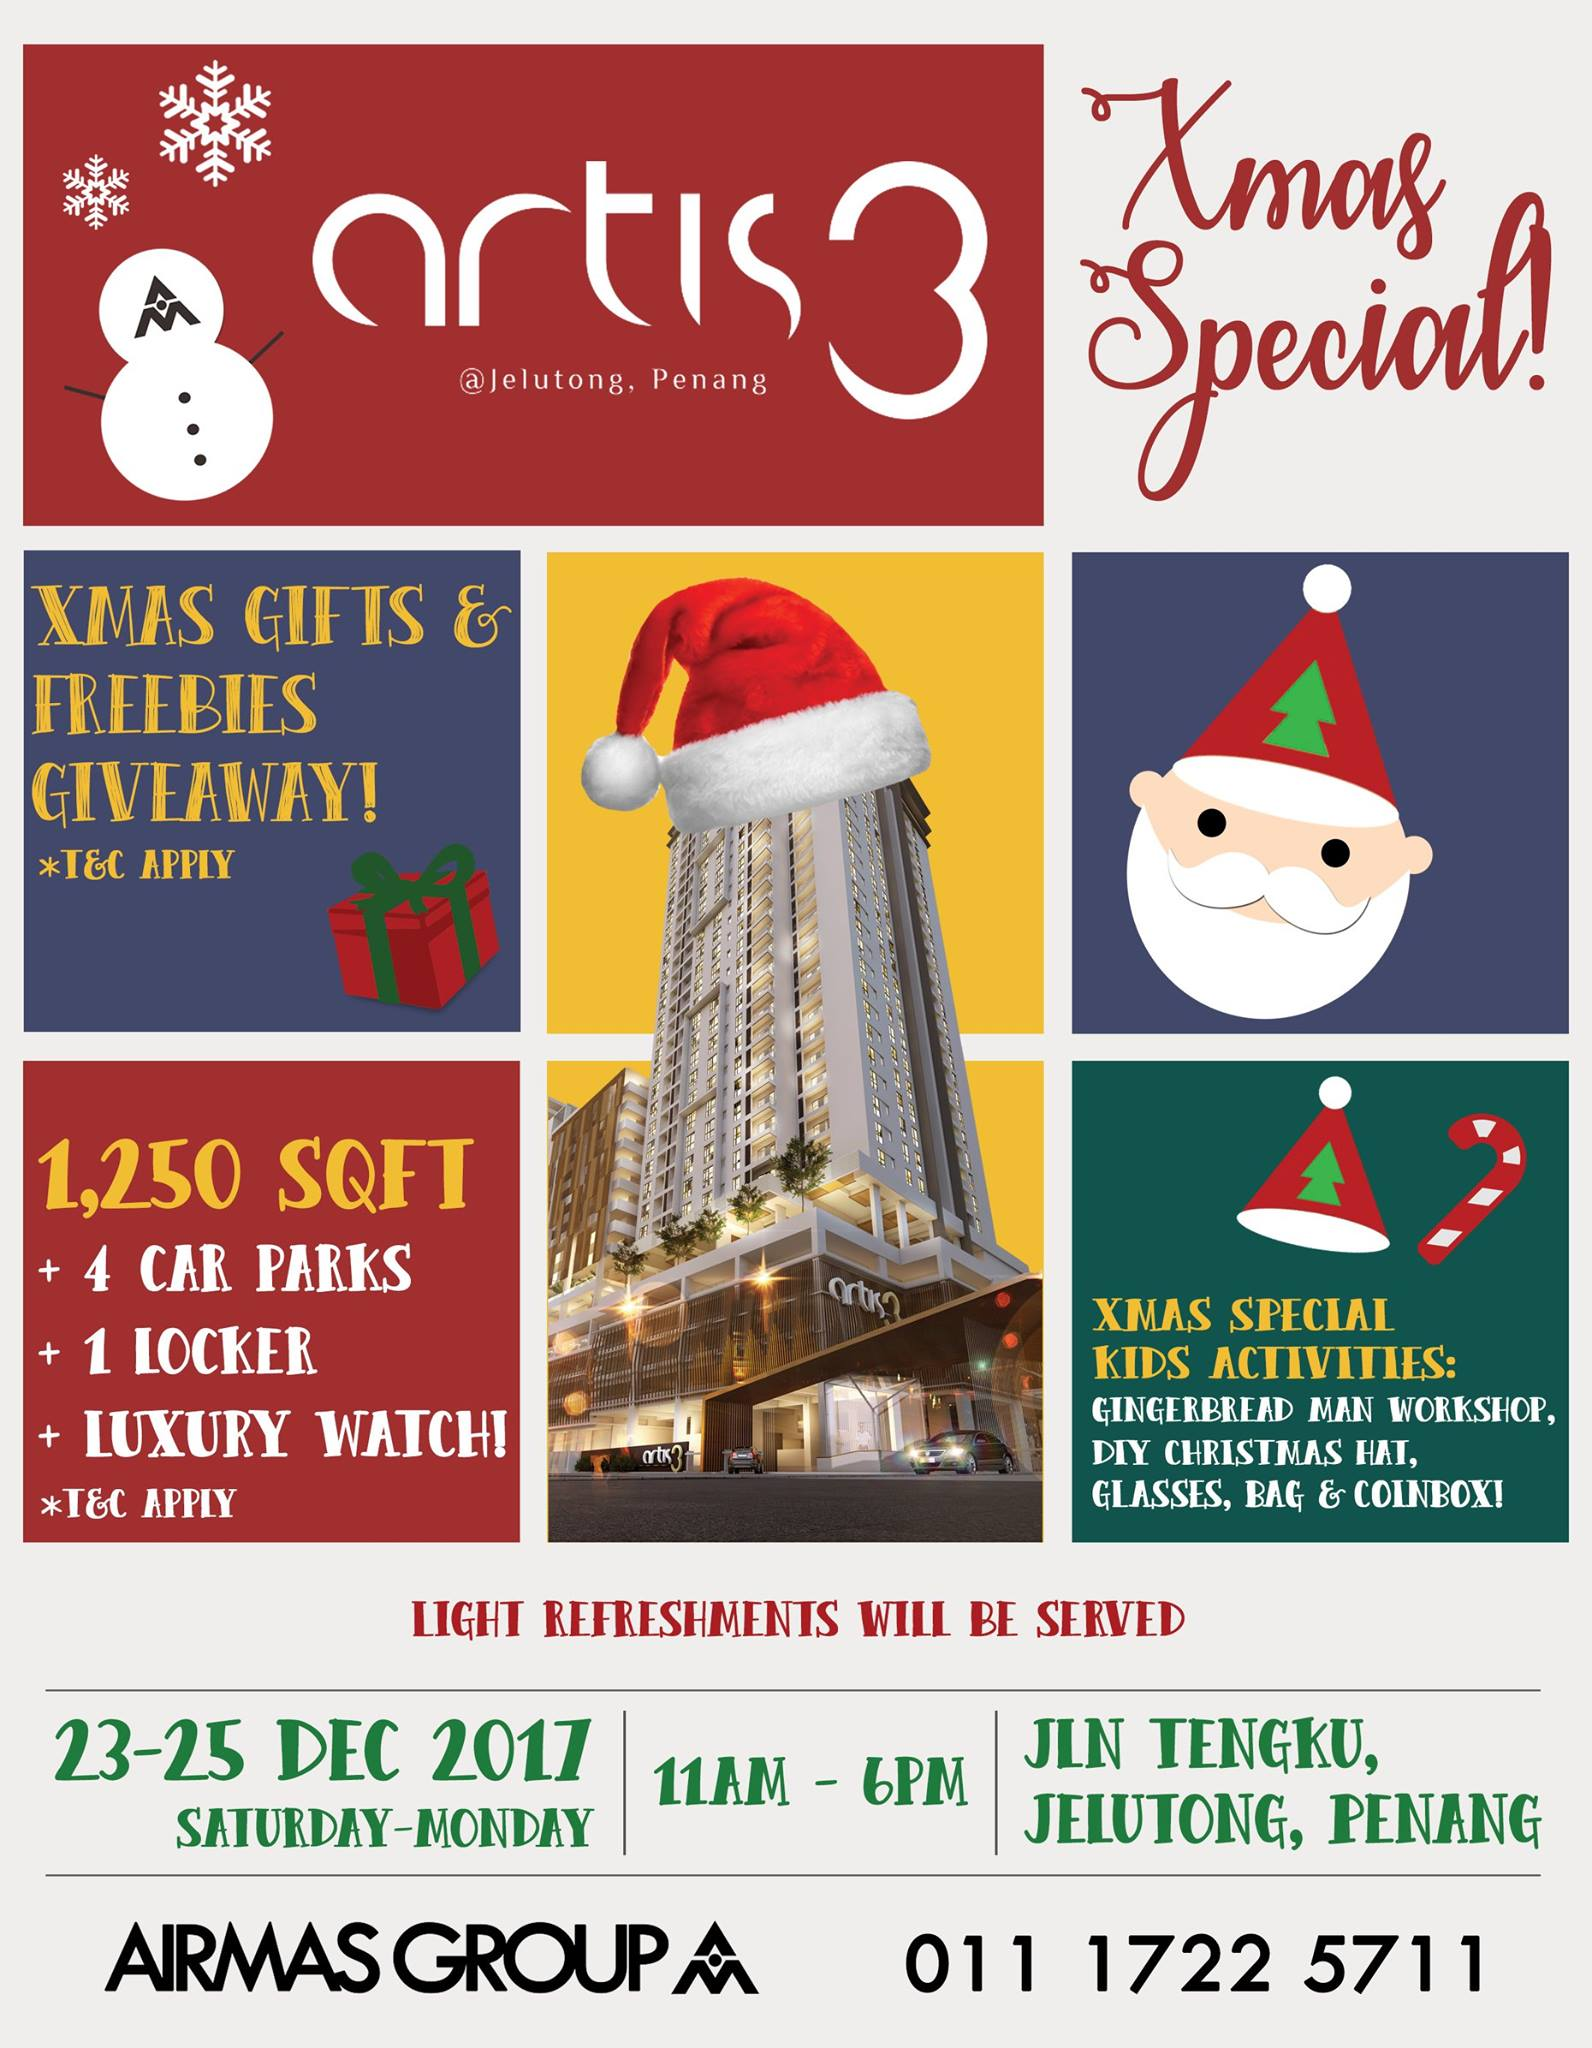 xmas gifts & freebies giveaway at Artis 3